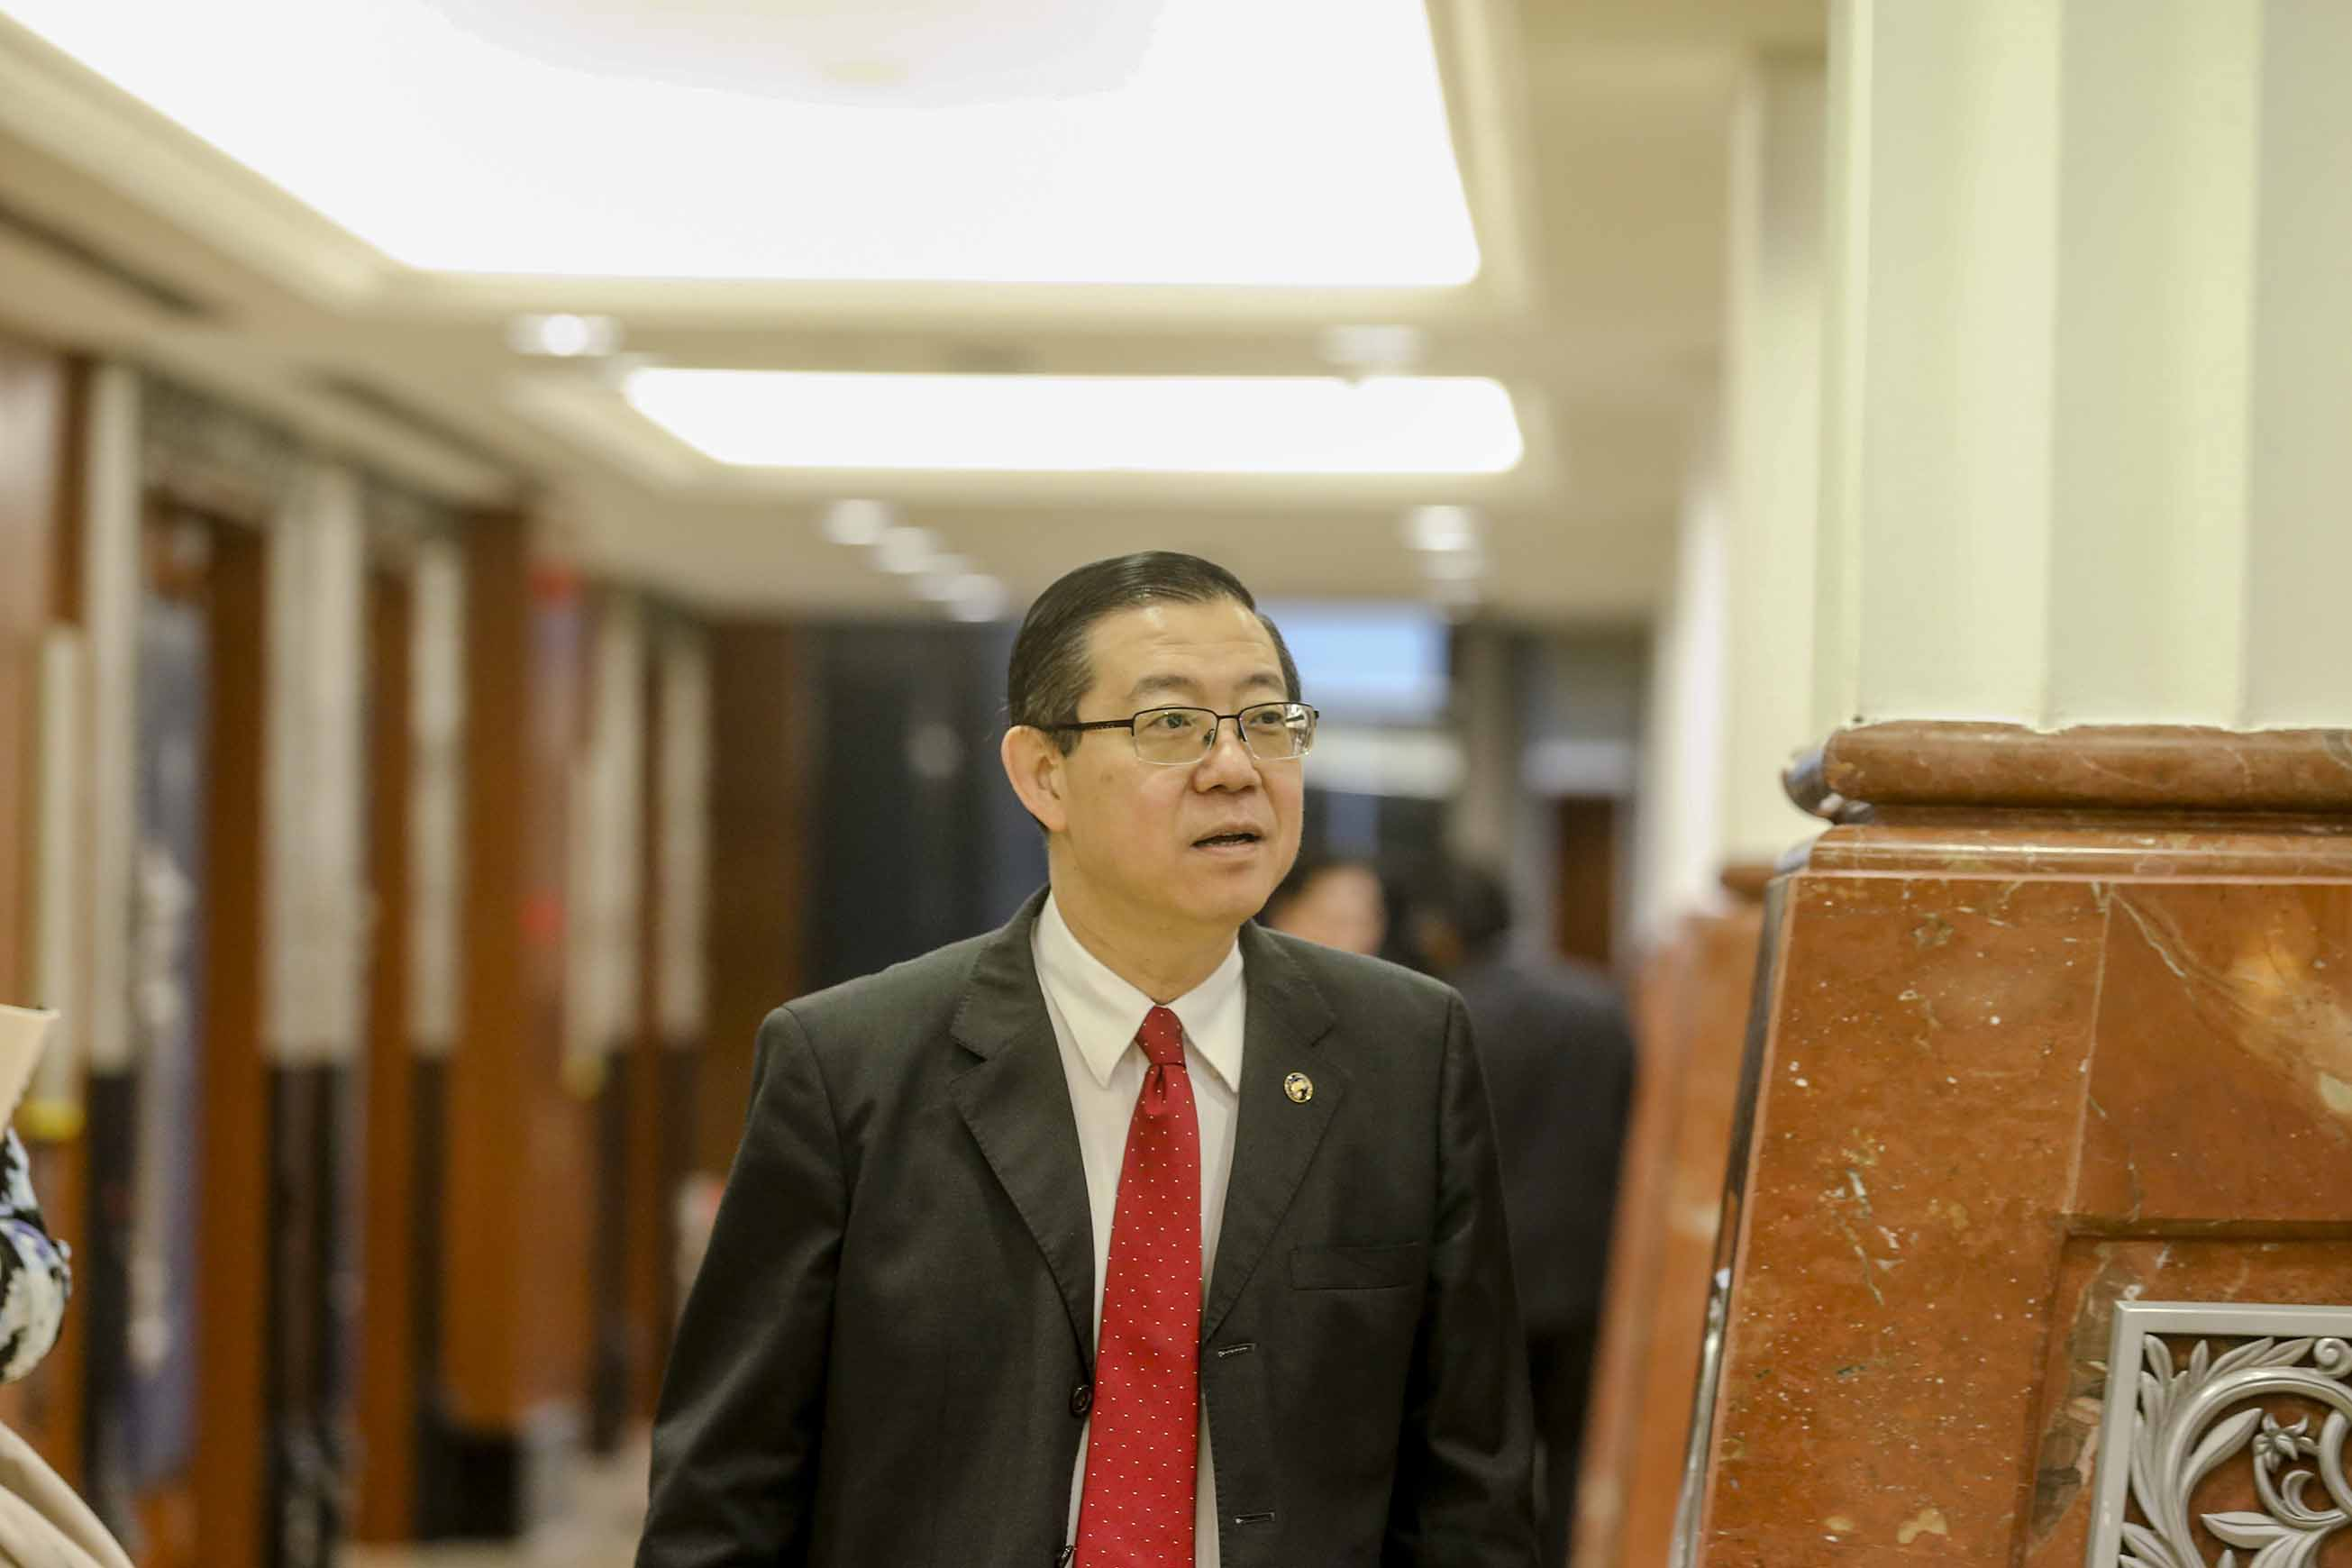 Finance Minister Lim Guan Eng says the government will distribute the Bantuan Sara Hidup direct cash aid to the Bottom 40th percentile (B40) of households beginning January 28. — Picture by Firdaus Latif